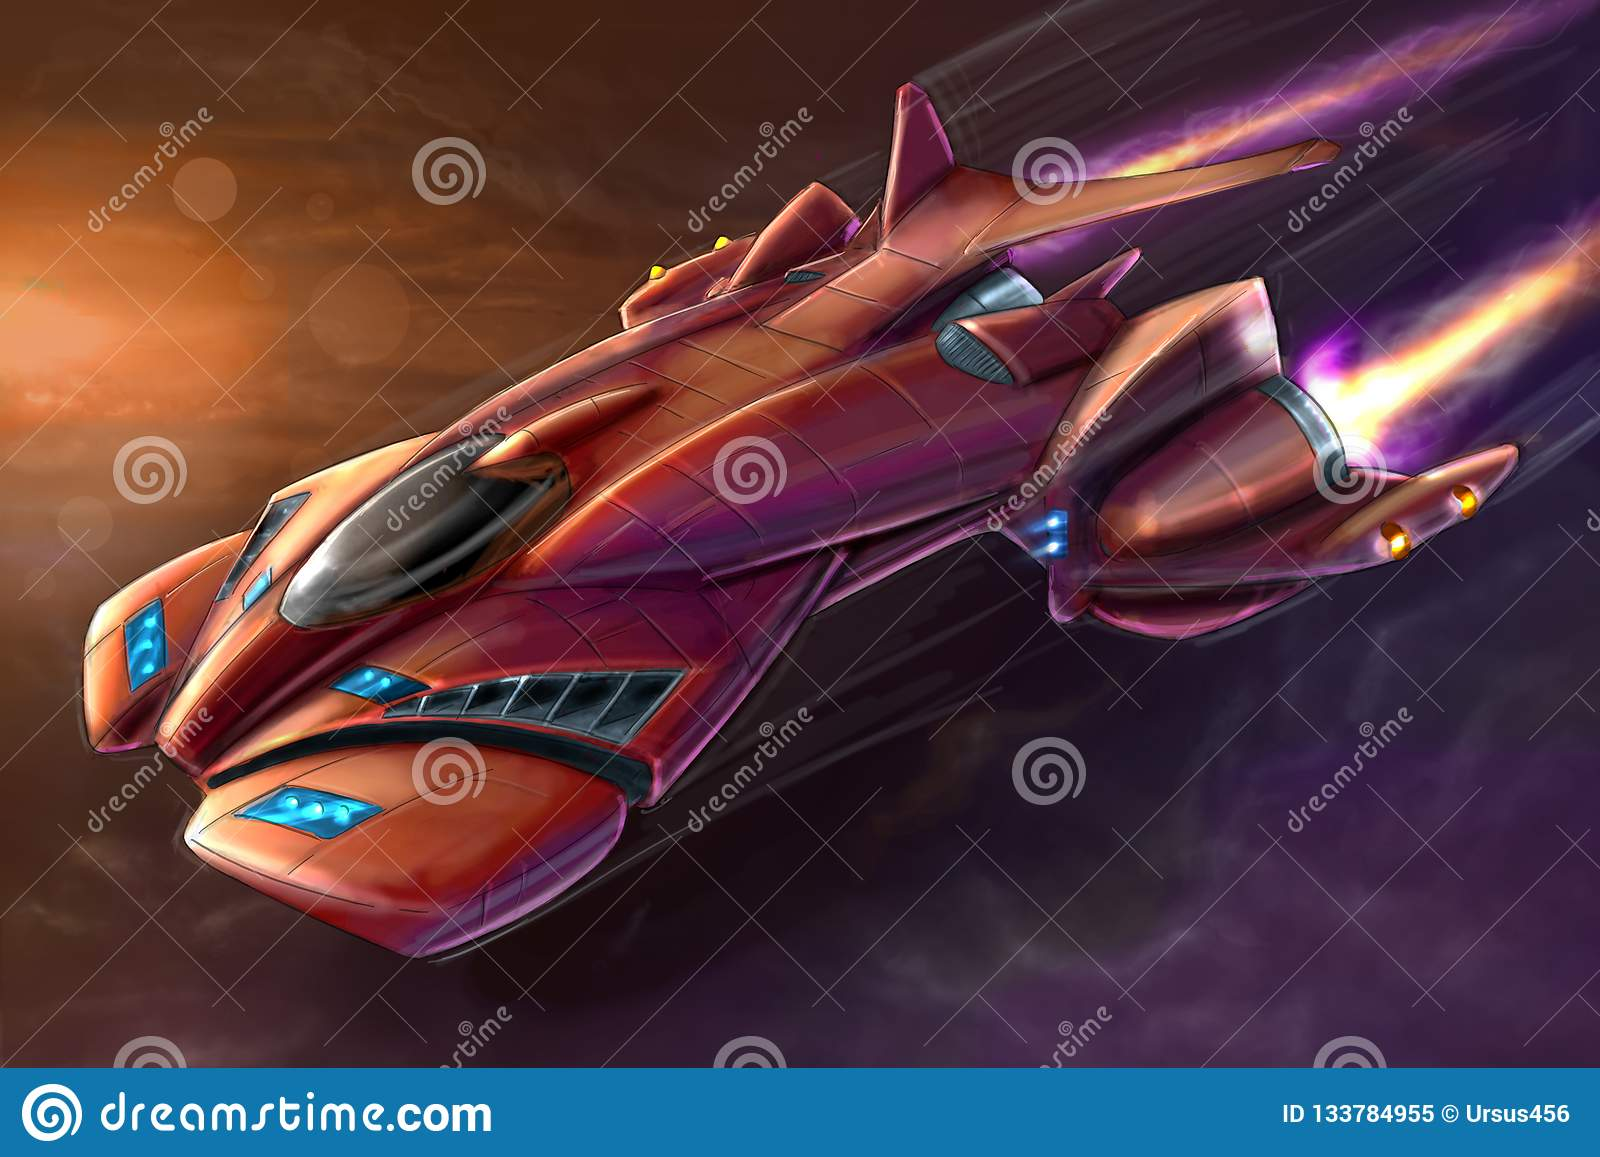 Concept Art Painting Of Futuristic Space Ship Or Aircraft